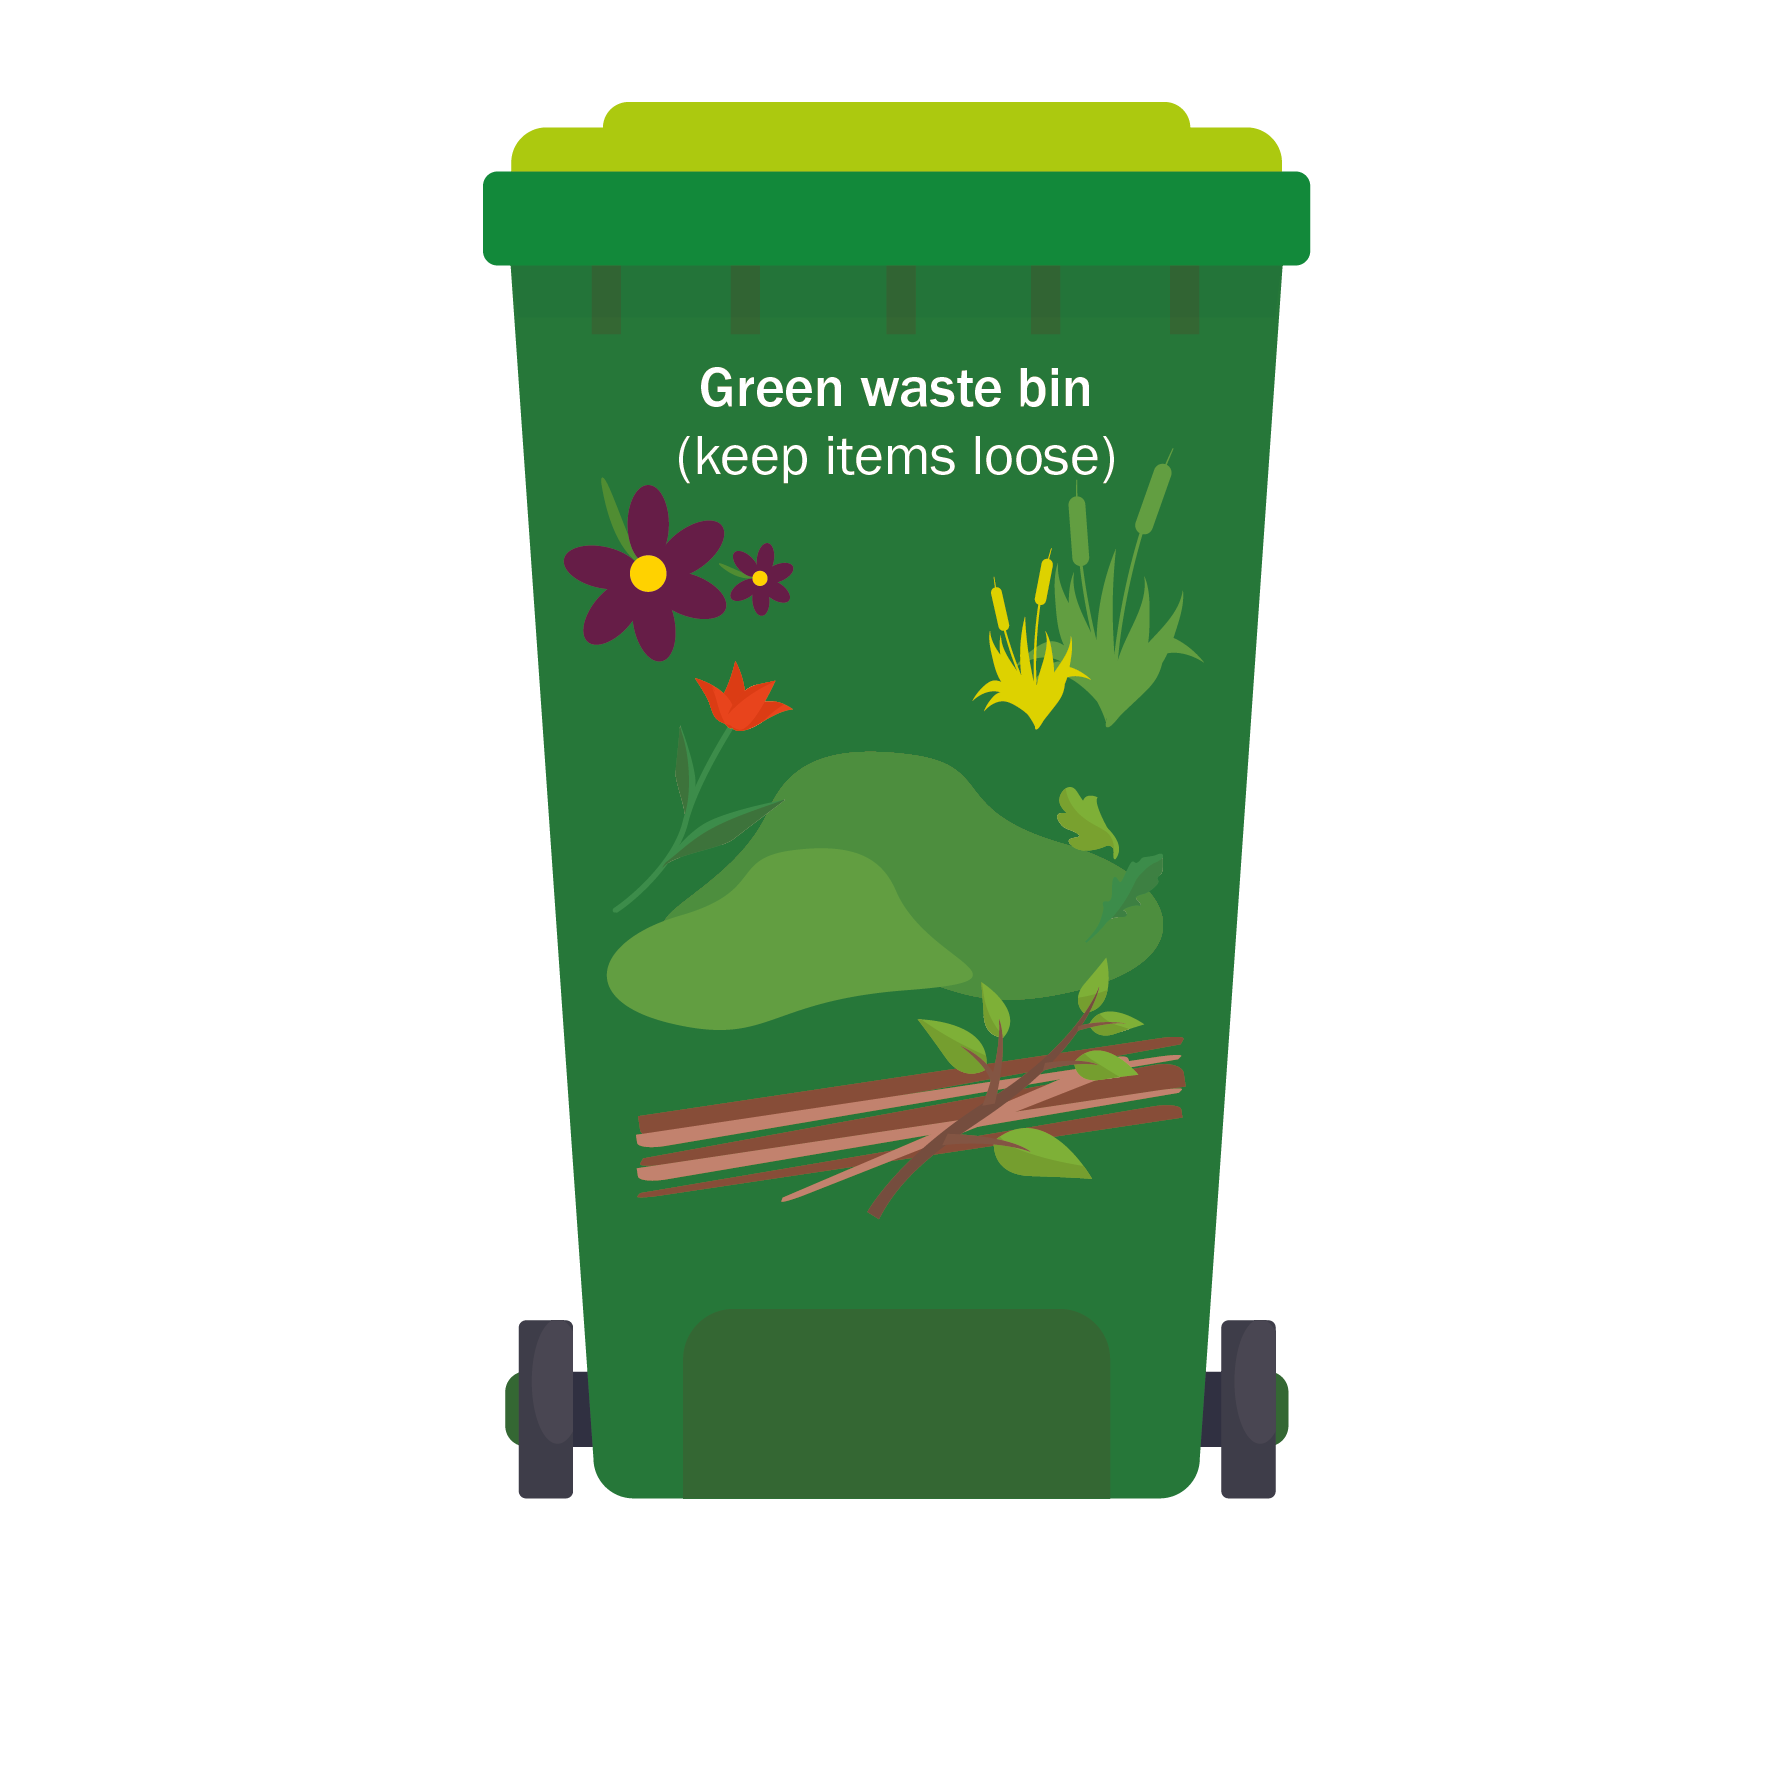 Examples of green waste bin items - see text